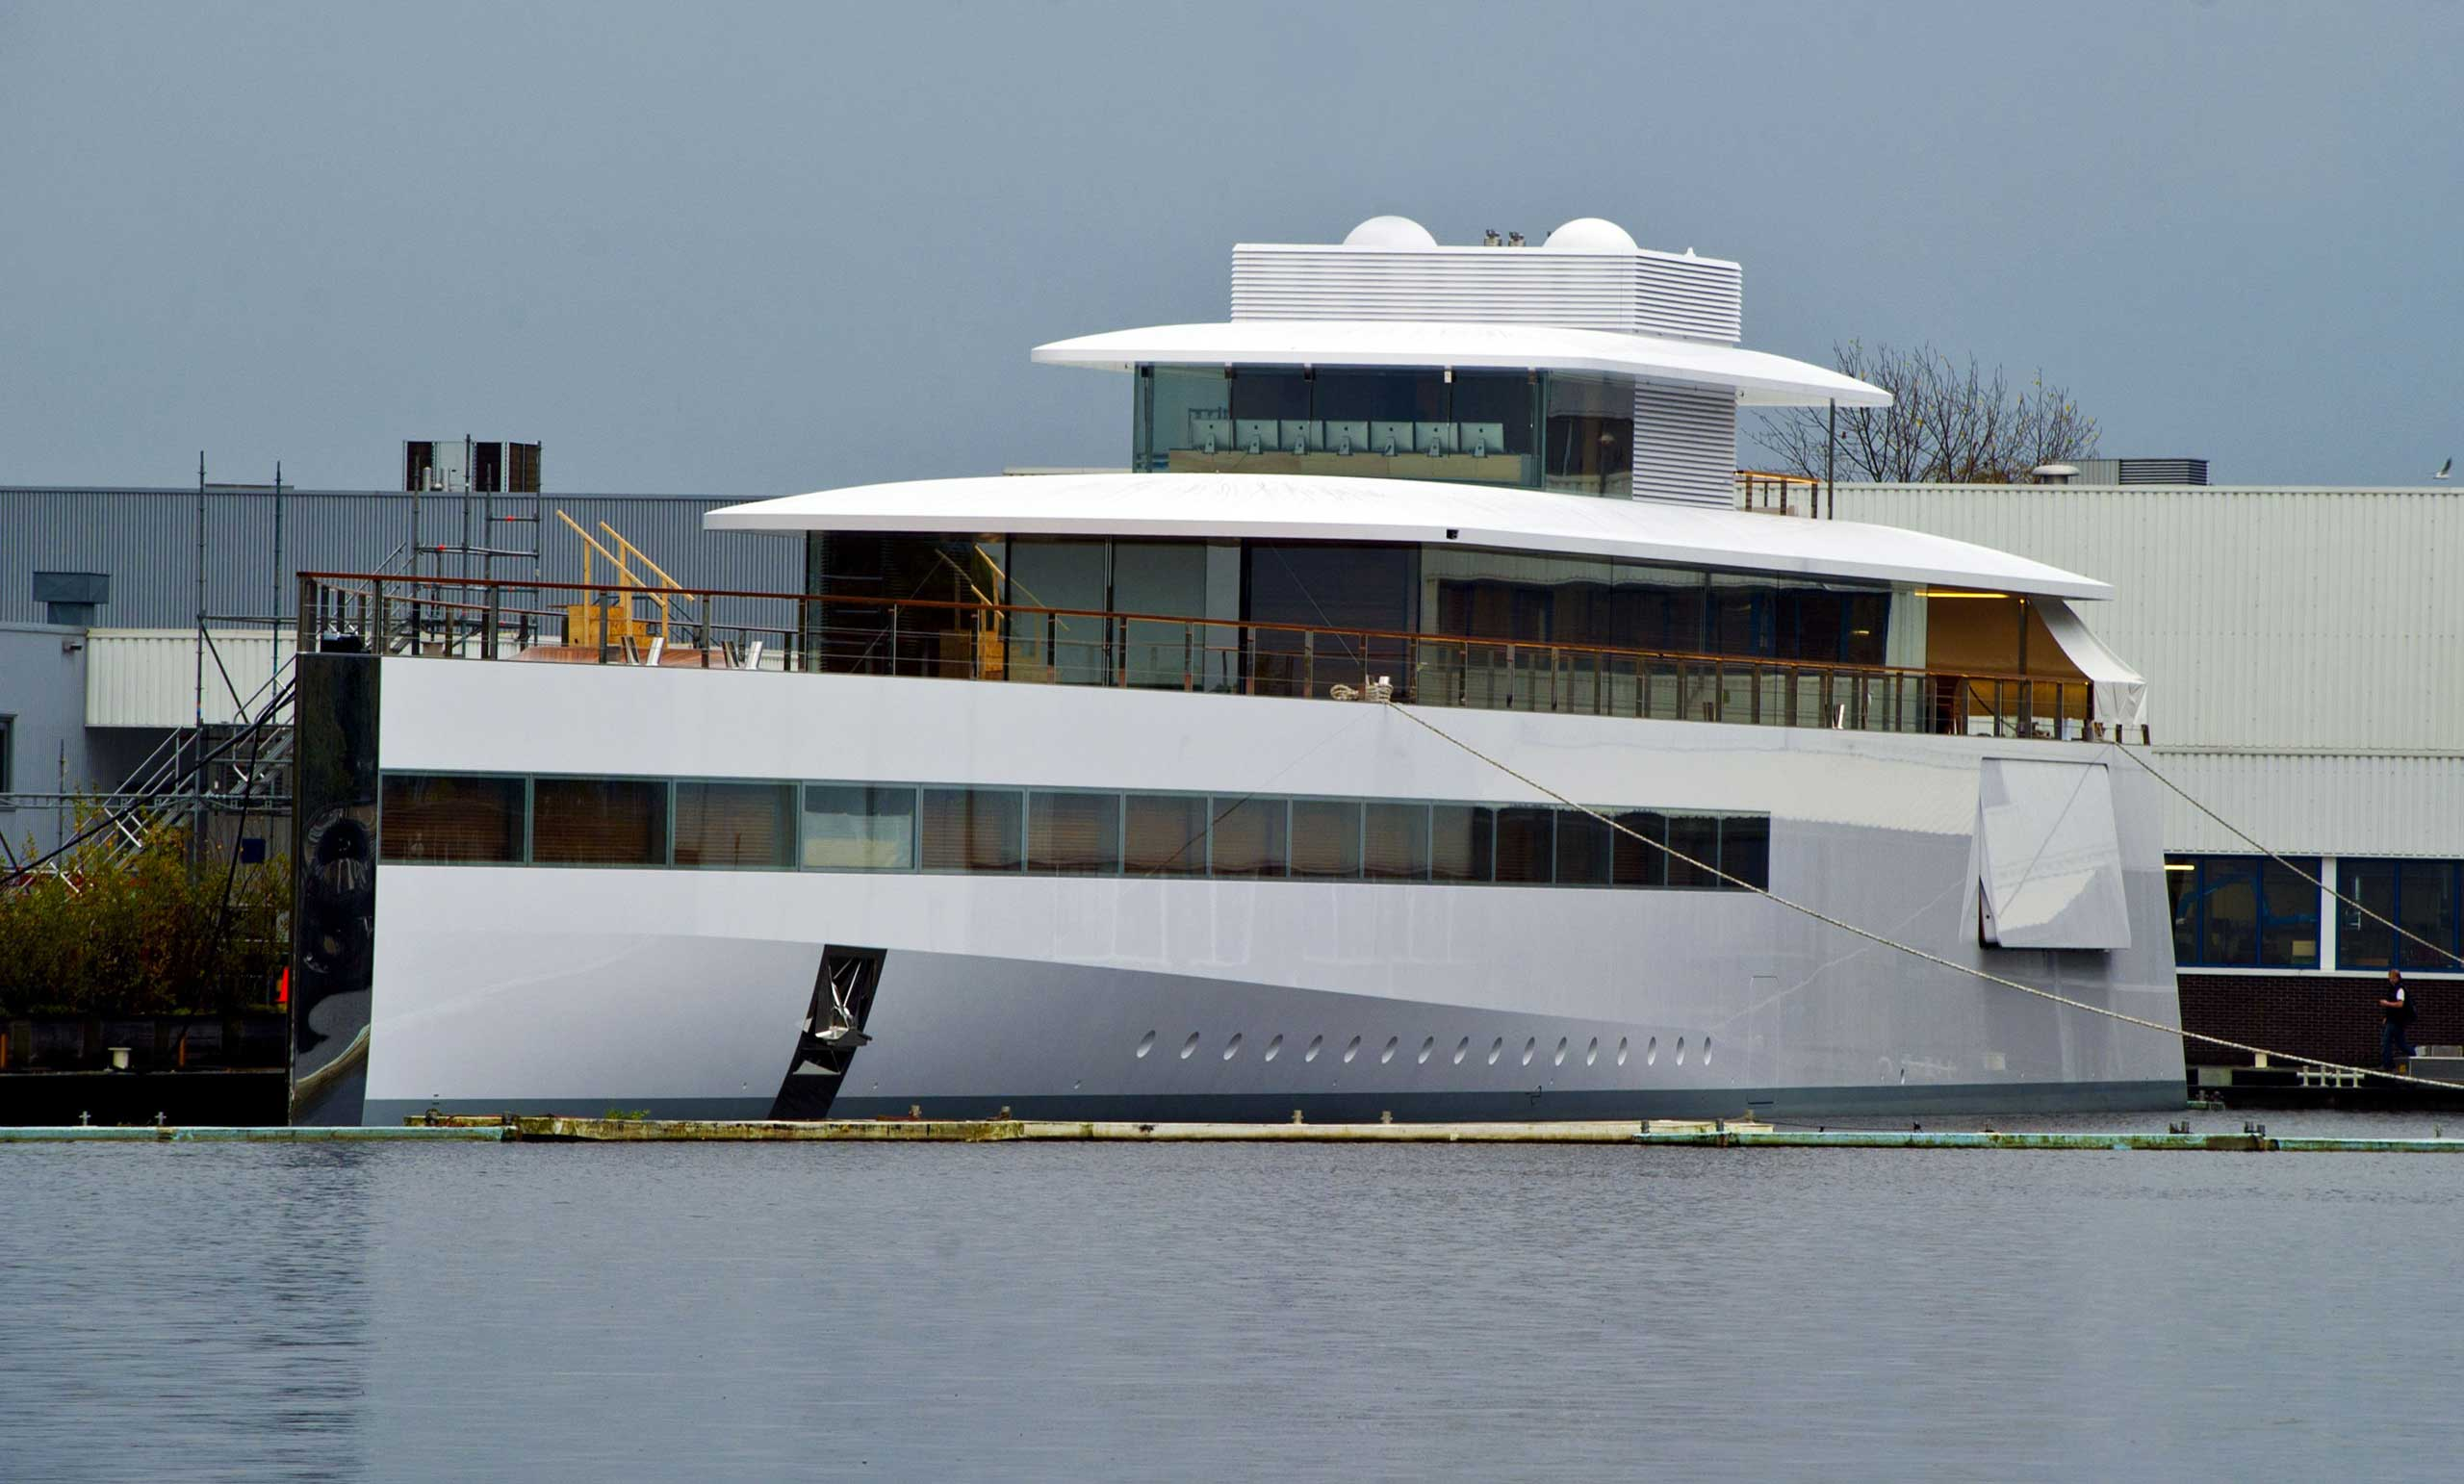 <strong>Steve Jobs</strong>                                                                      The Apple CEO's super yacht Venus was designed by Philippe Starck's design company Ubik. Jobs spent approximately $131 million on it but passed away in 2011 before it was completed.